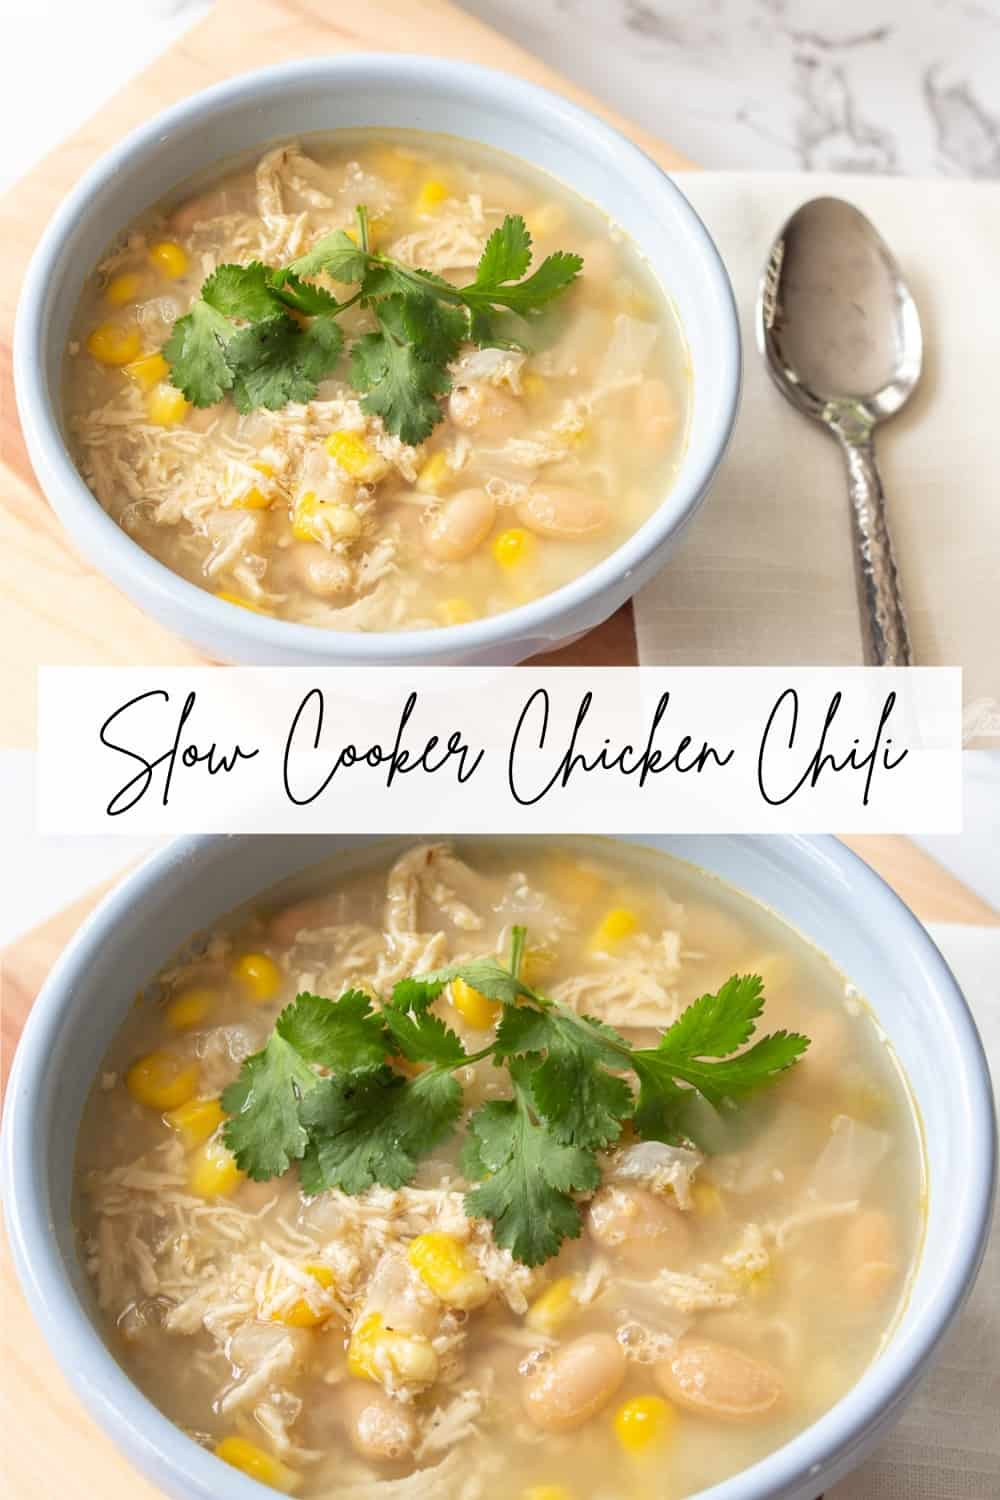 collage photo showing two bowls of chicken bean chili